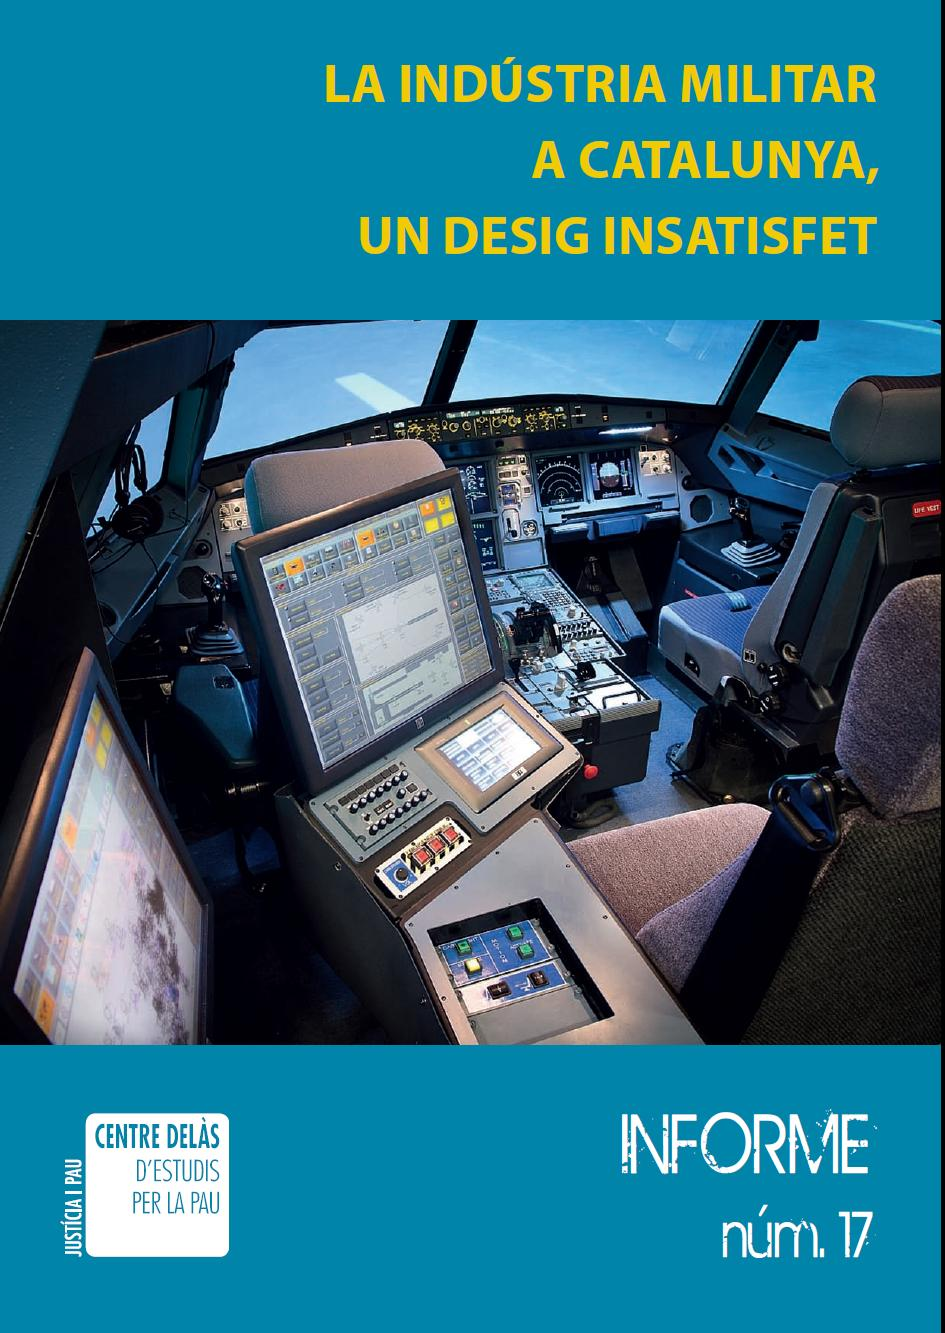 Report 17: The military industry in Catalonia, an unsatisfied desire